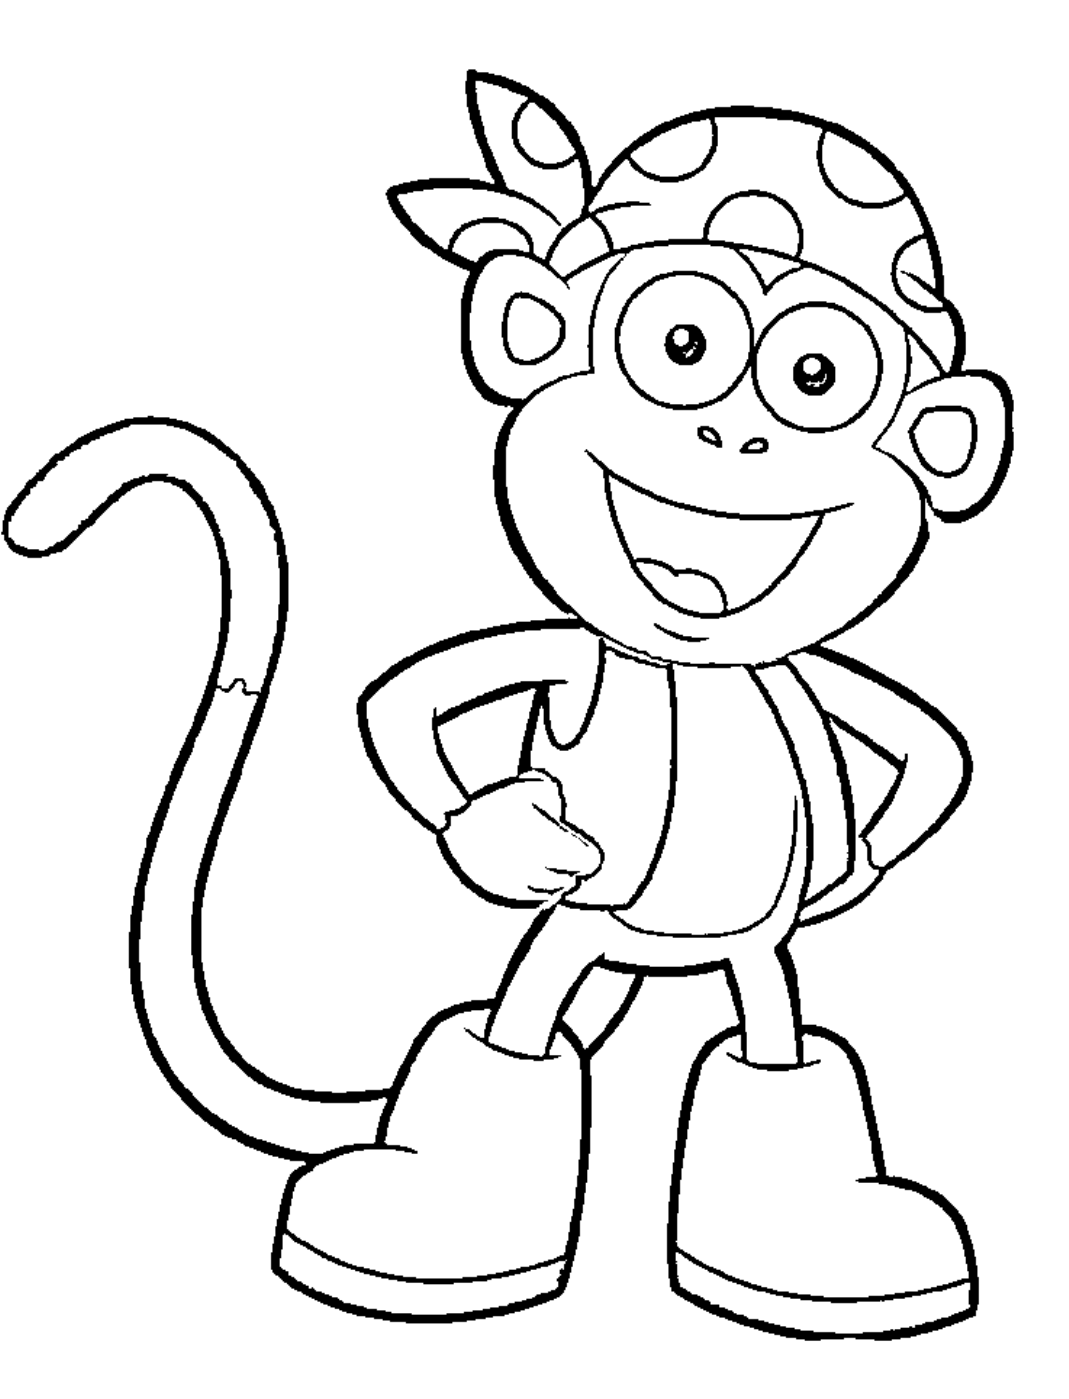 coloring pages of cartoon characters coloring pages of disney characters pages characters coloring of cartoon